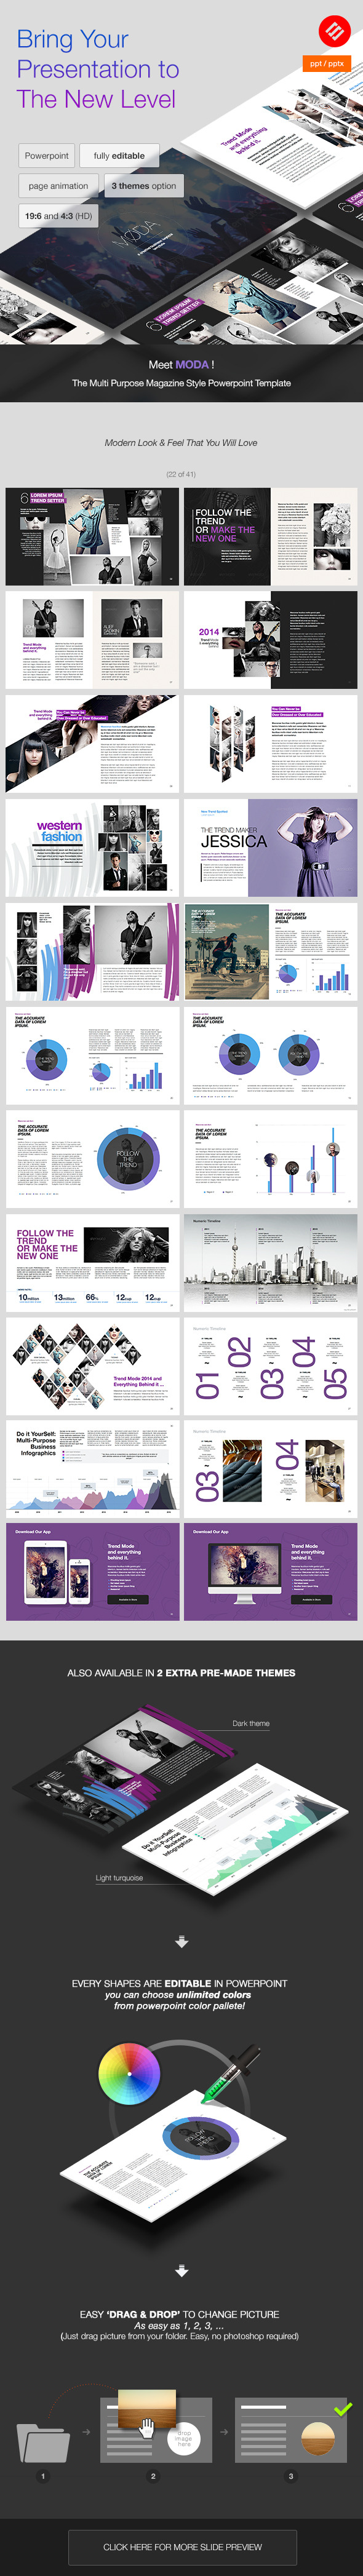 MODA - Modern Powerpoint Template by Slidehack | GraphicRiver